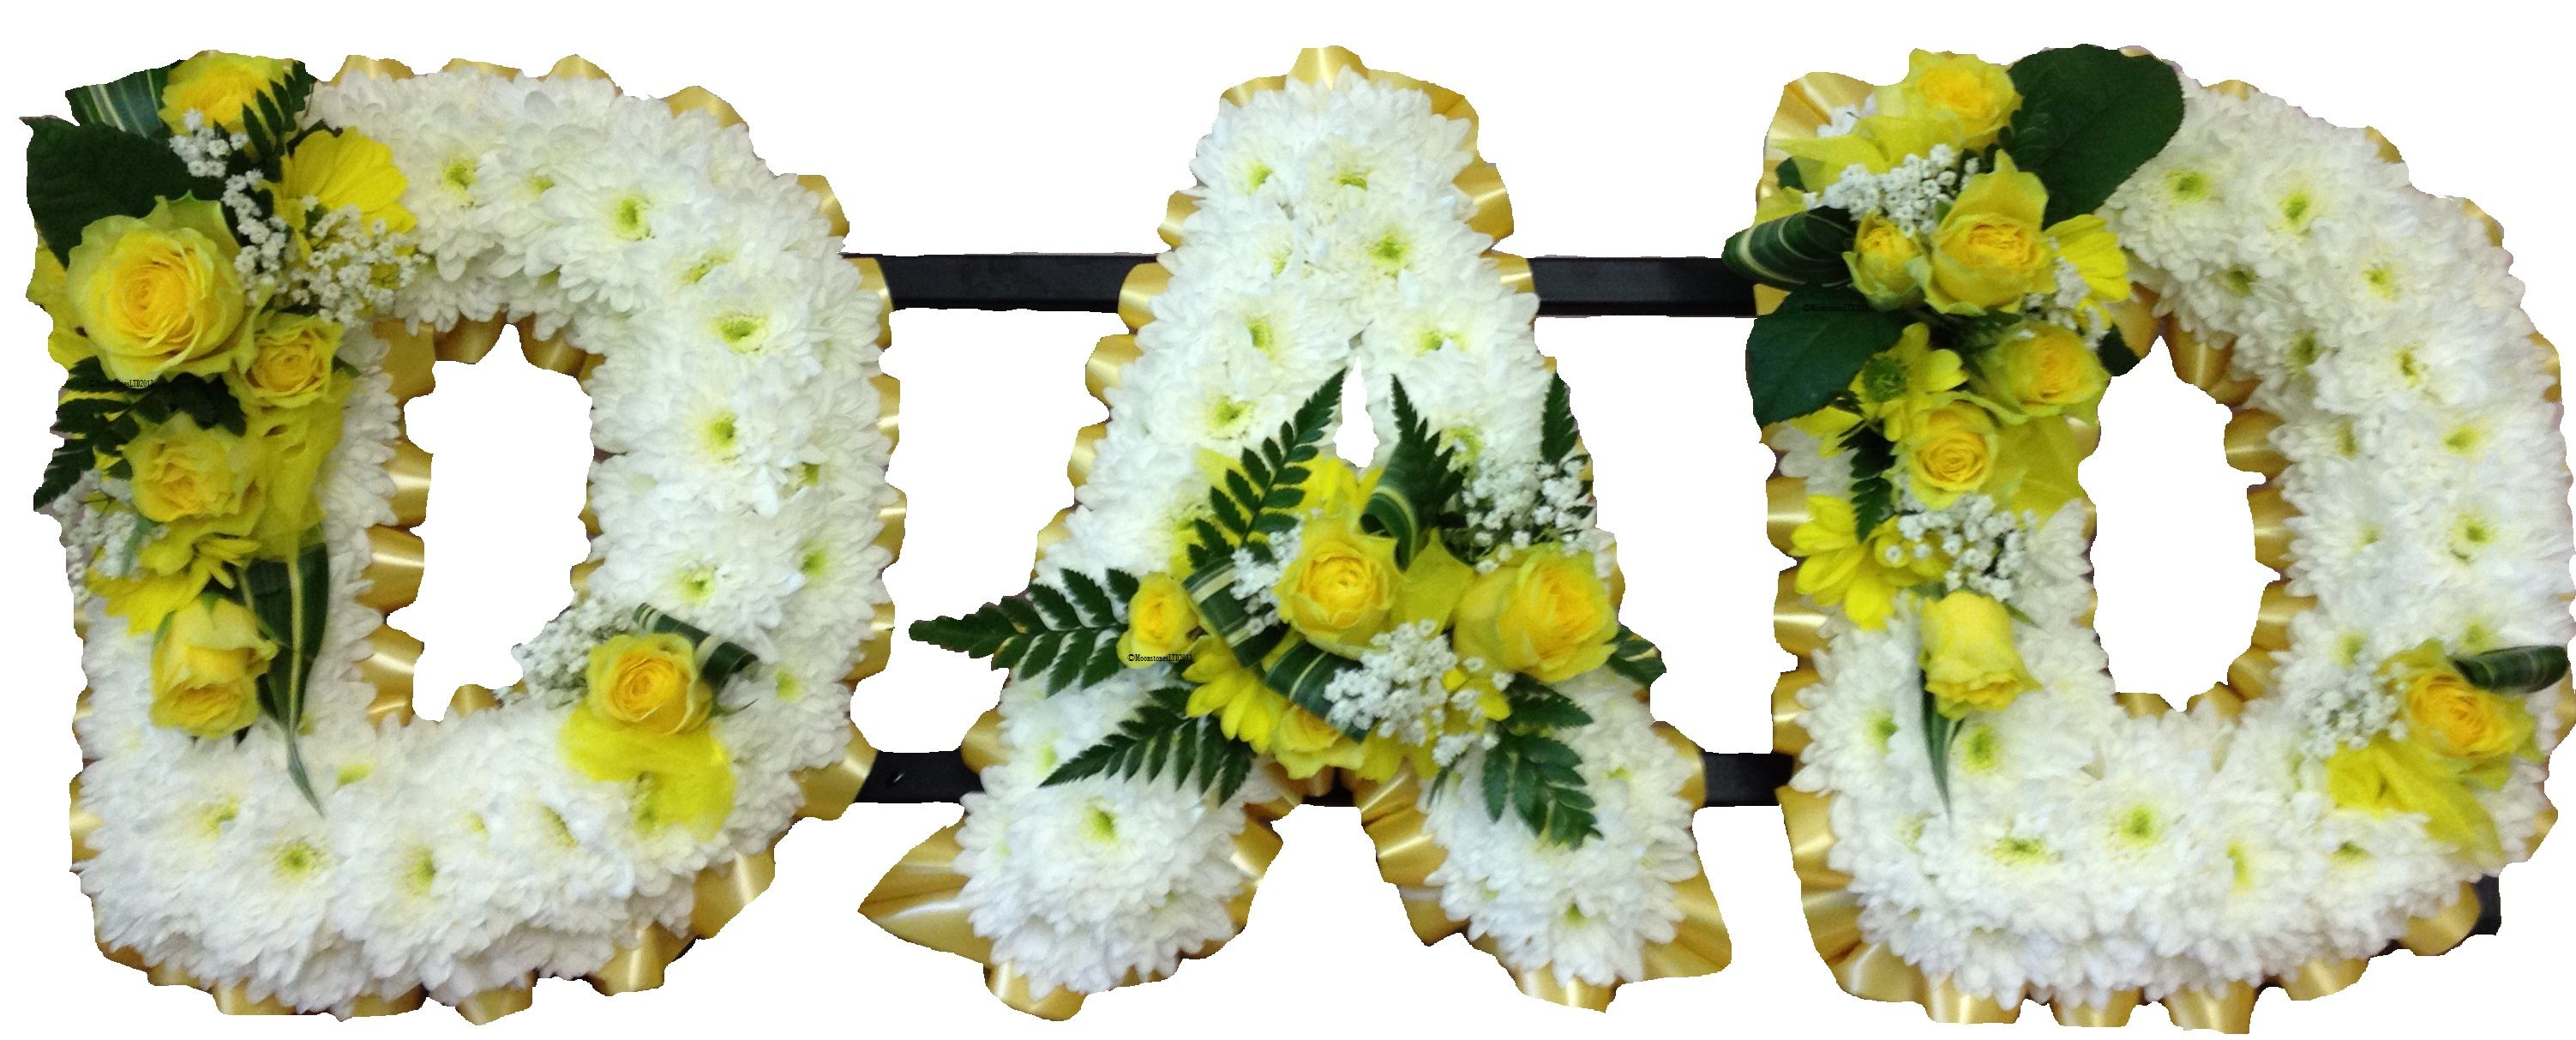 Image result for Images of Floral tributes for Dad